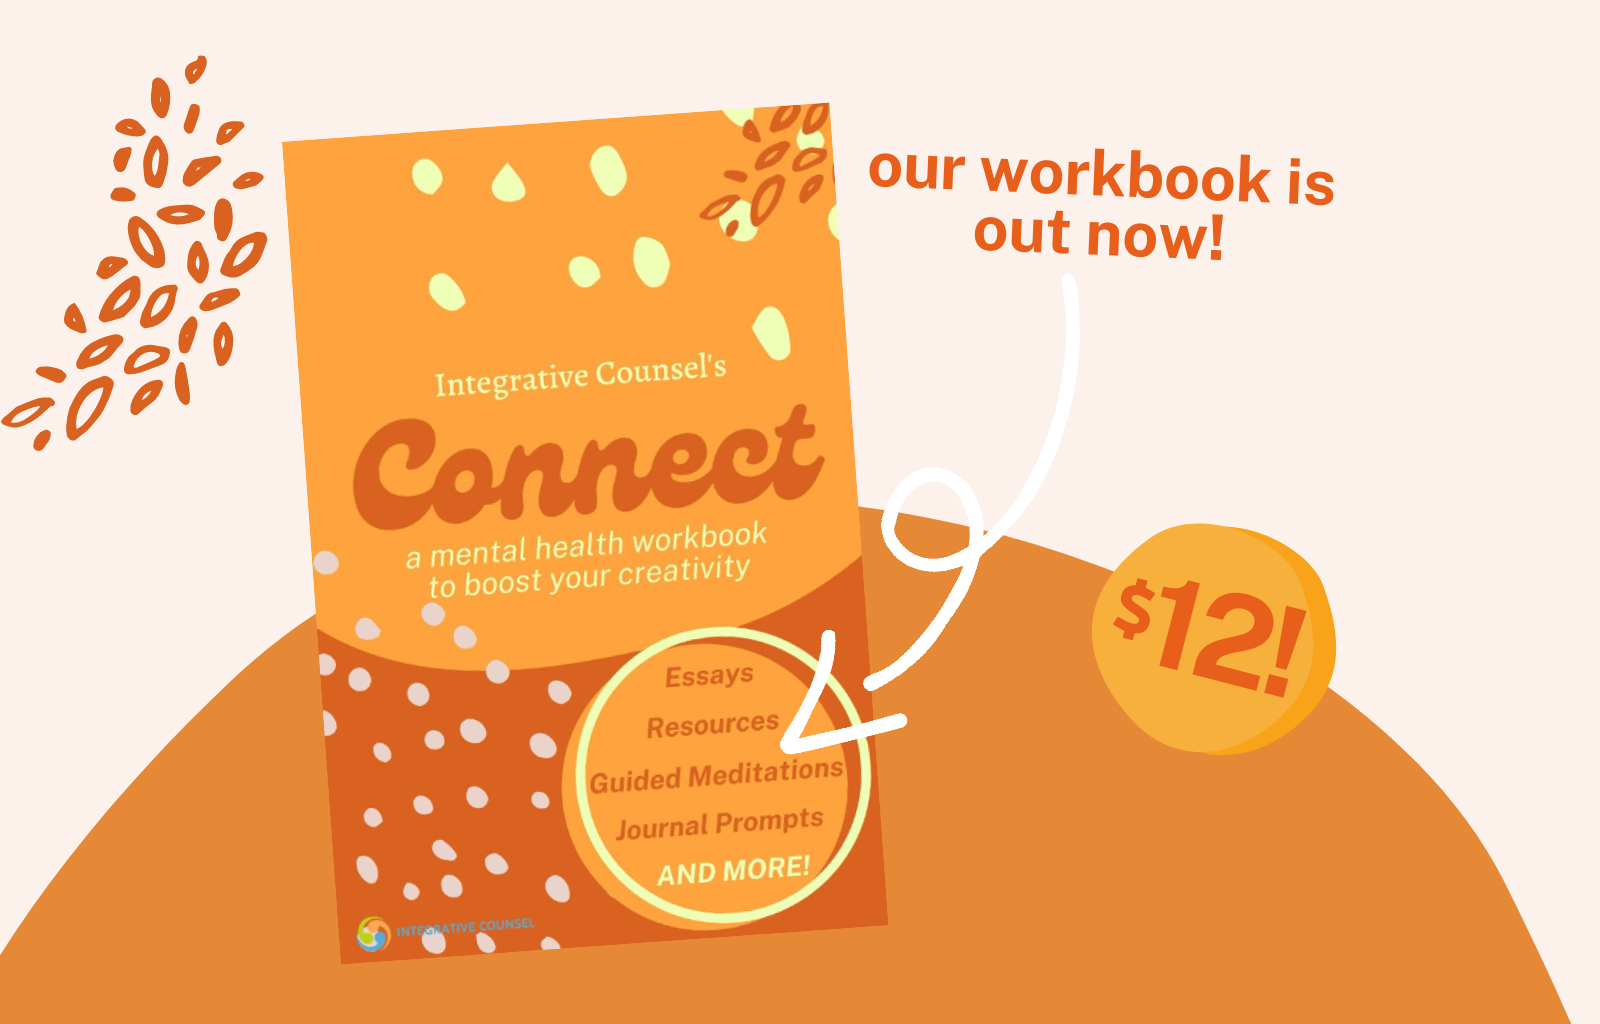 our workbook is out now